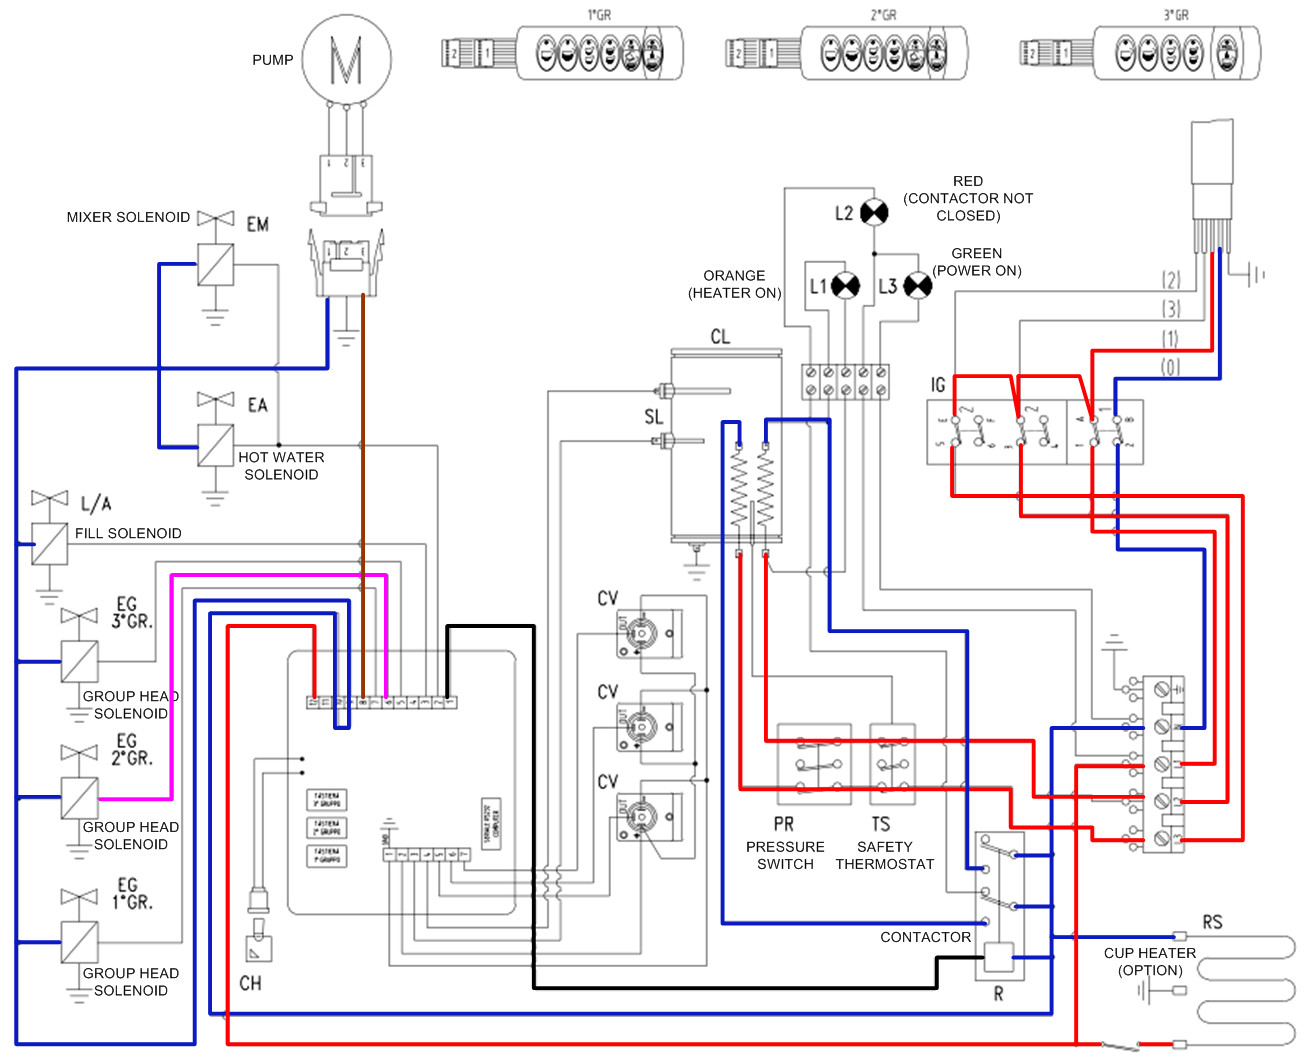 hight resolution of bezzera wiring diagram view full size